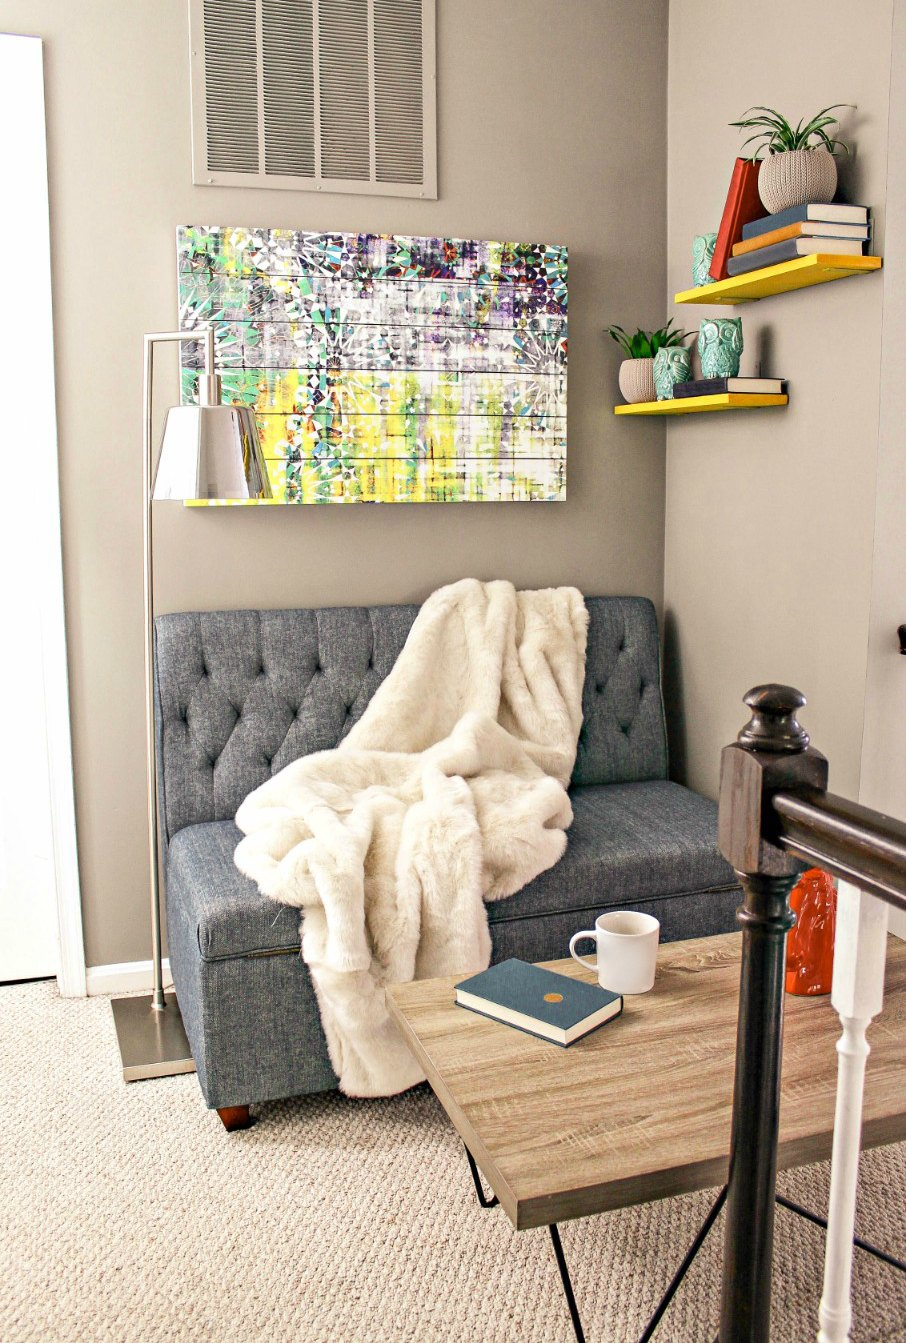 6 Ways To Transform An Unused Space in Your Home